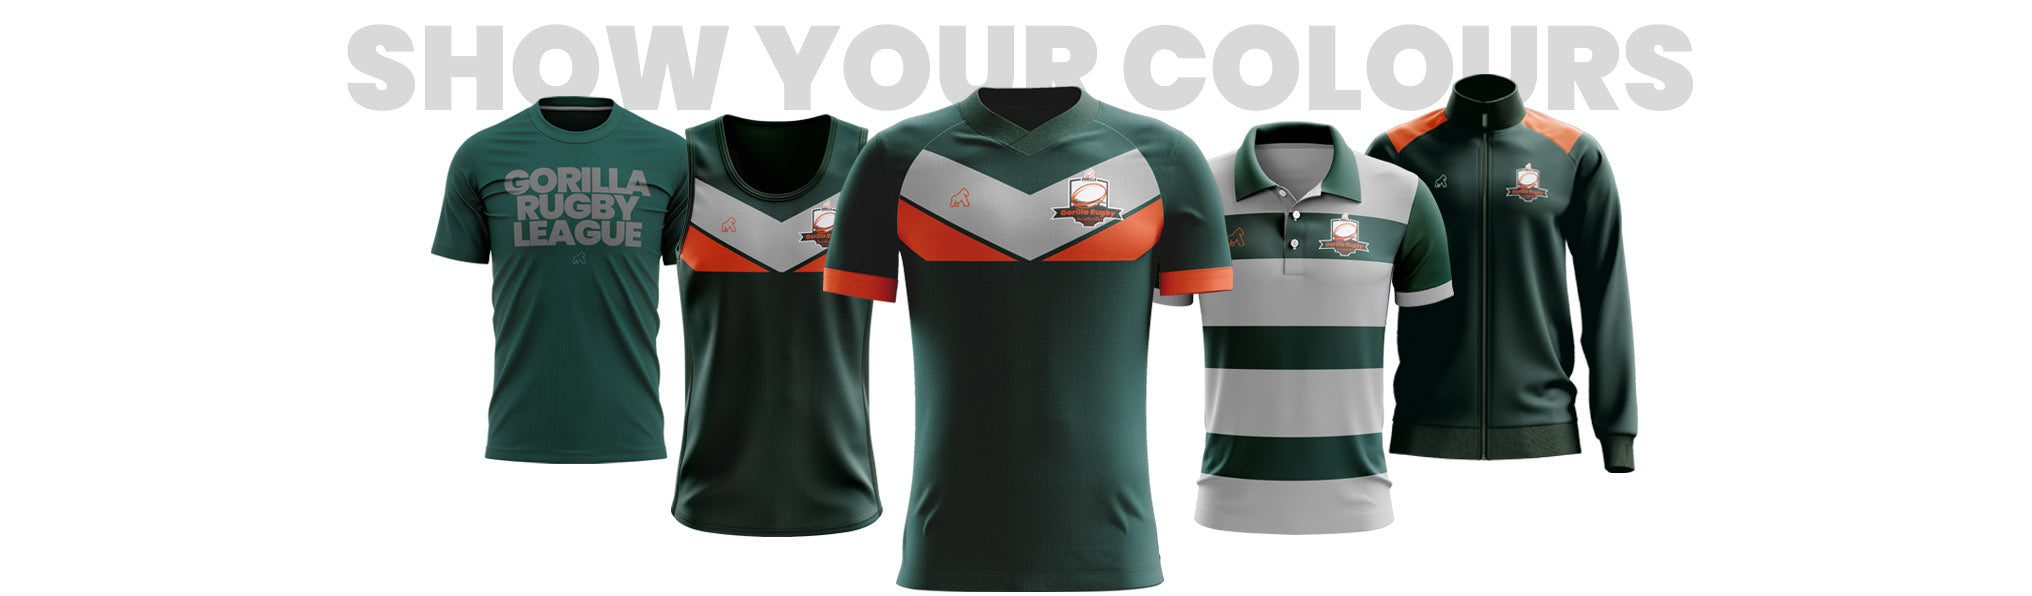 Custom Rugby League